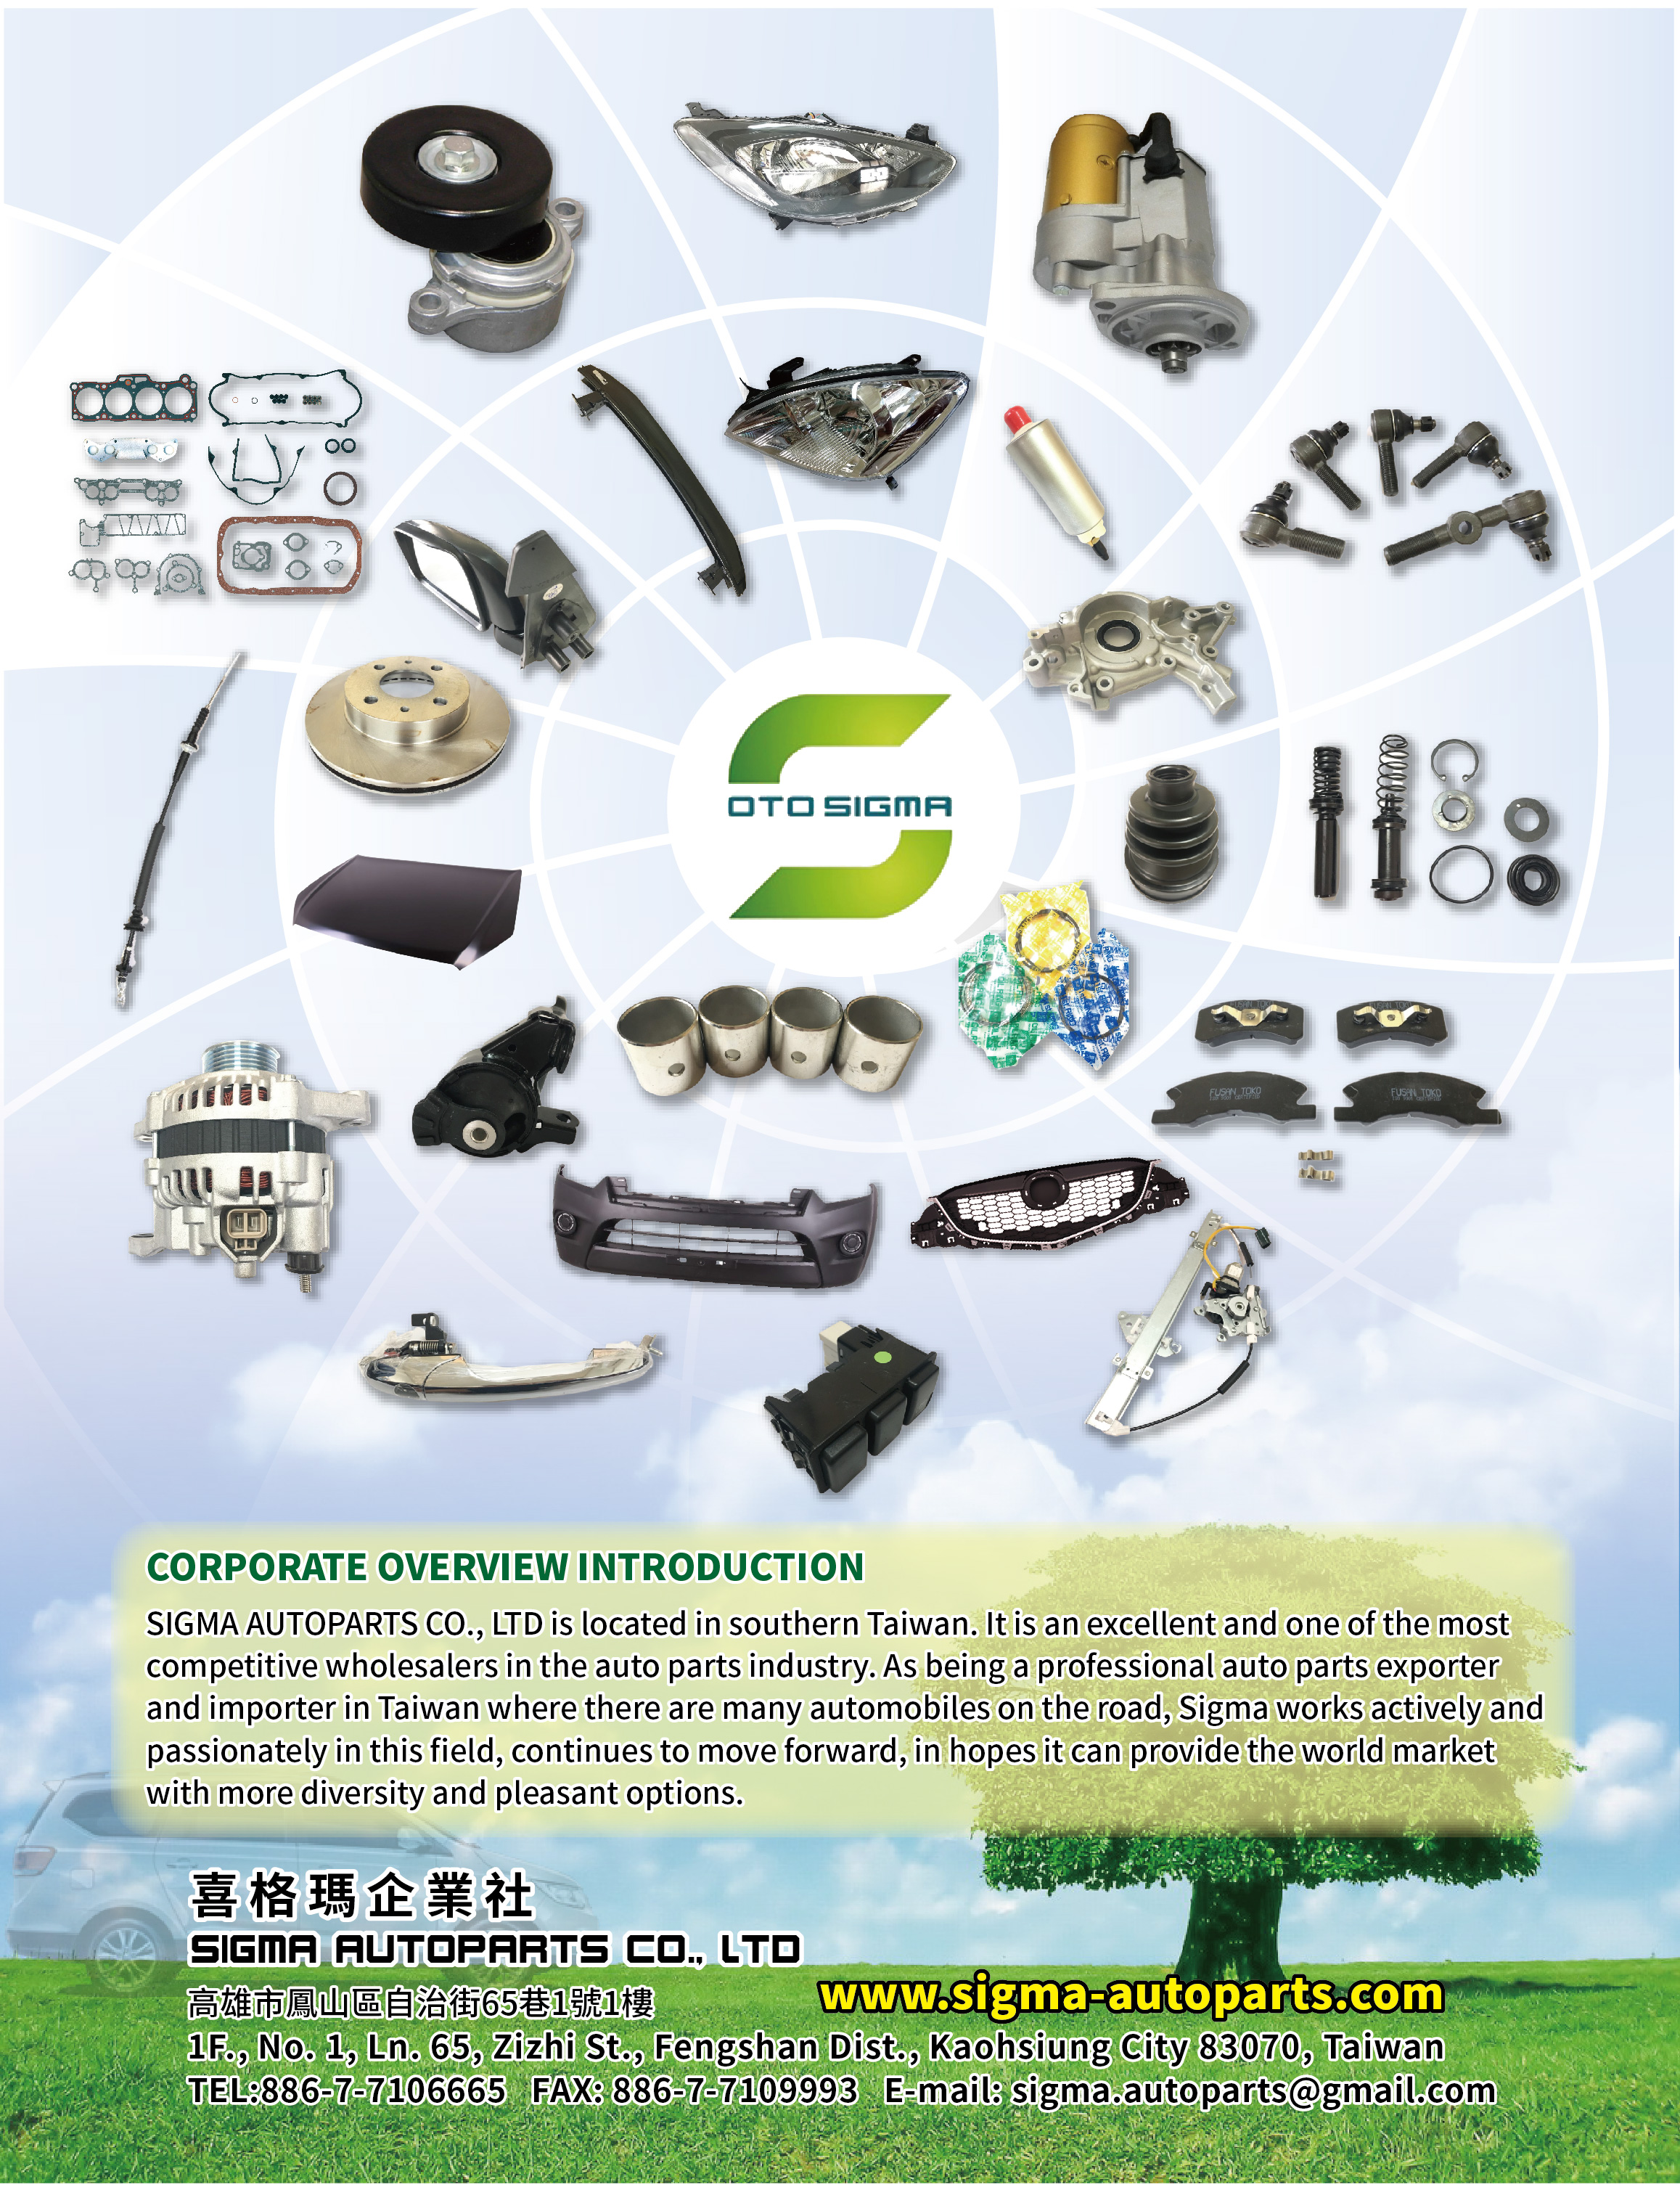 SIGMA AUTOPARTS CO., LTD